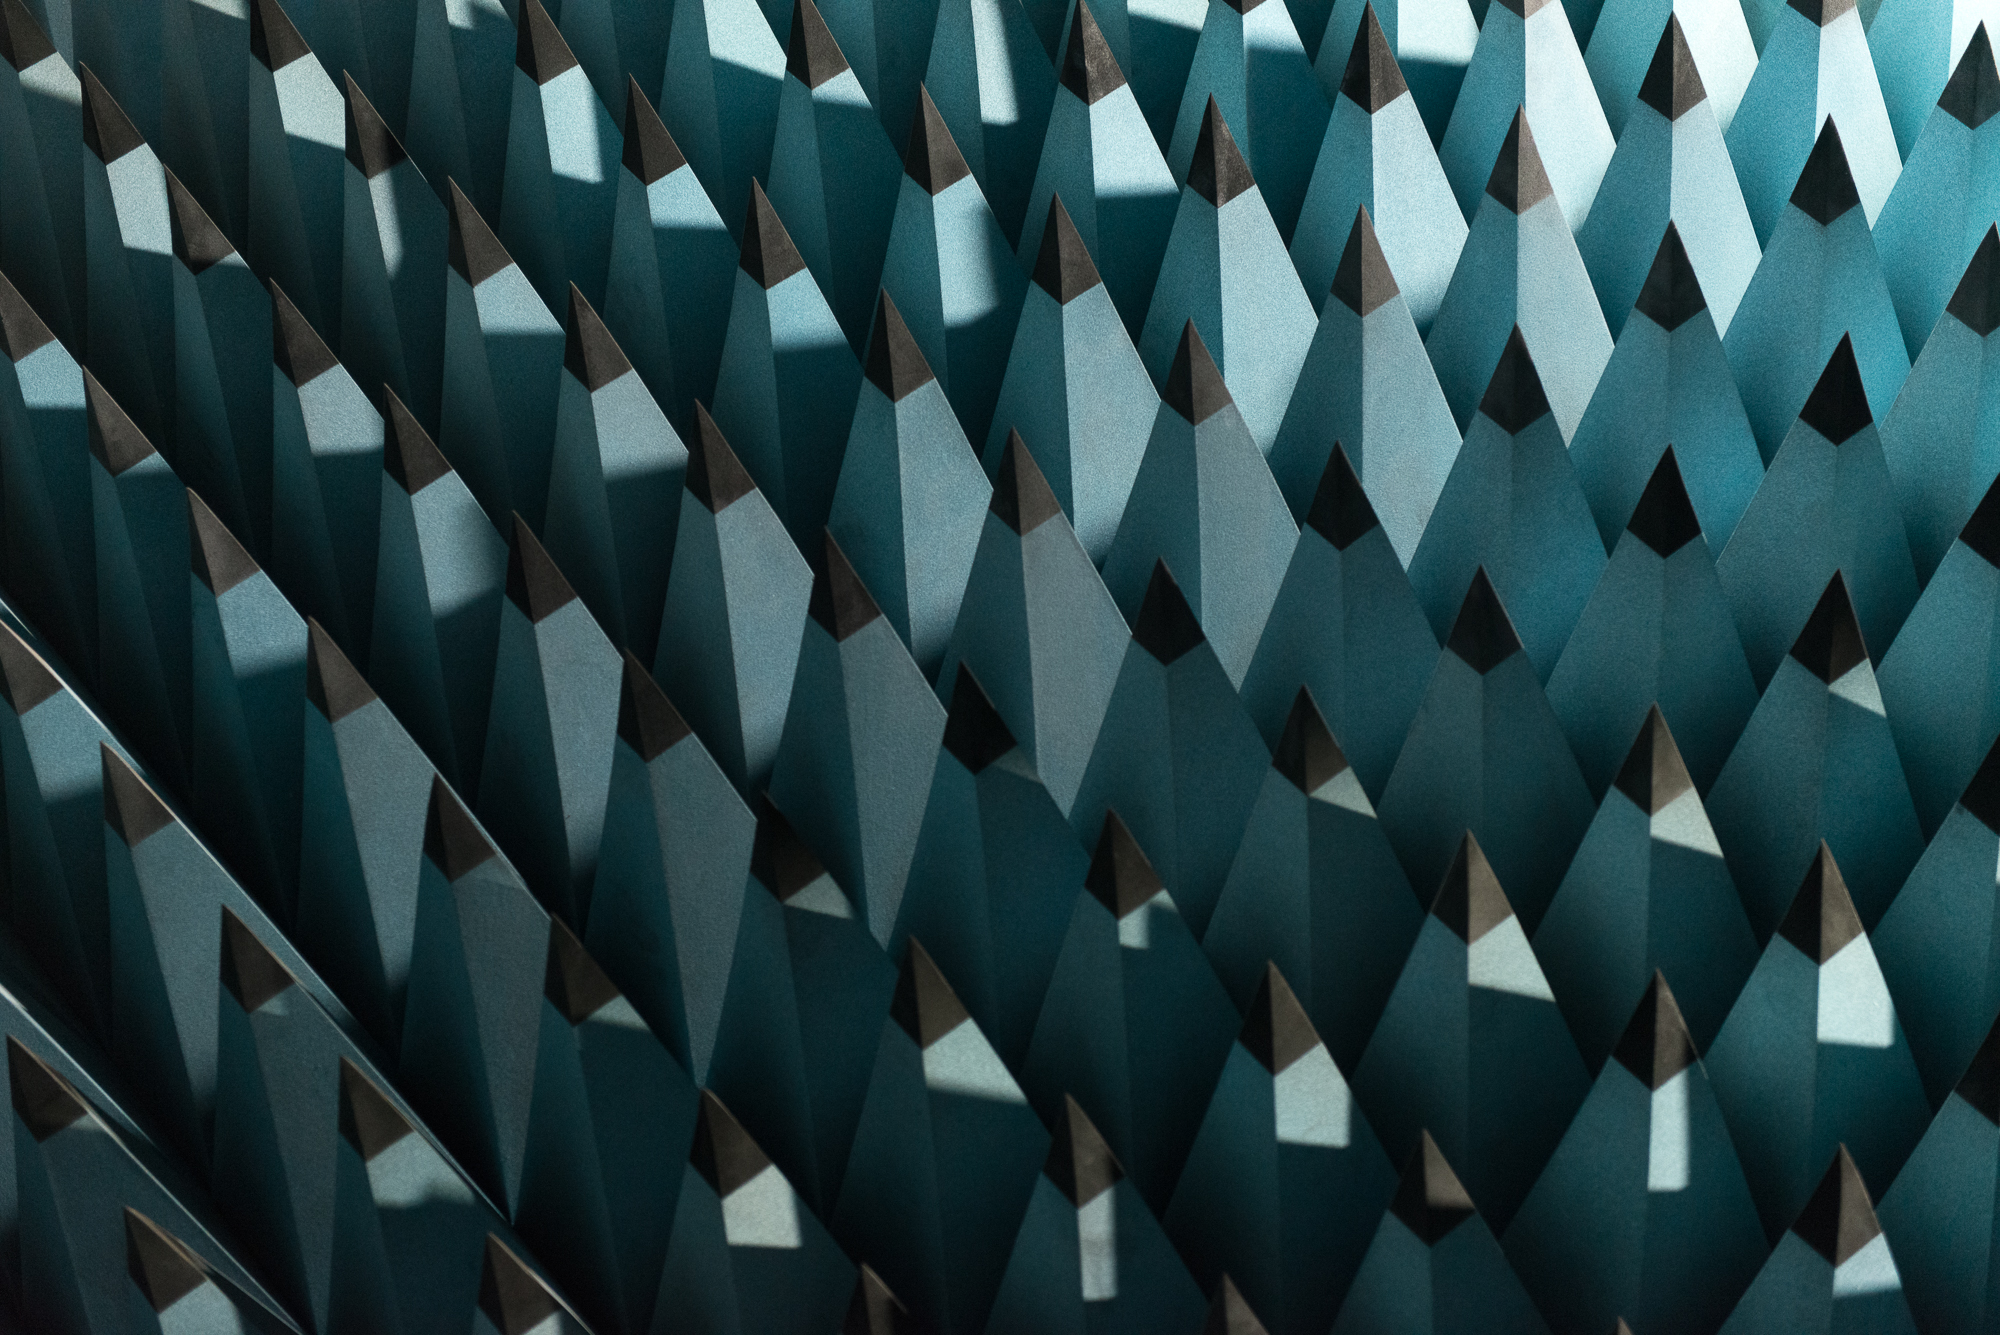 A photo of some radio-wave insulating foam. The foam is formed in to tall pointy pyramids with pale blue bases and black tips. The pyramids are arranged in a rigid grid - as if the entire floor were spikey.